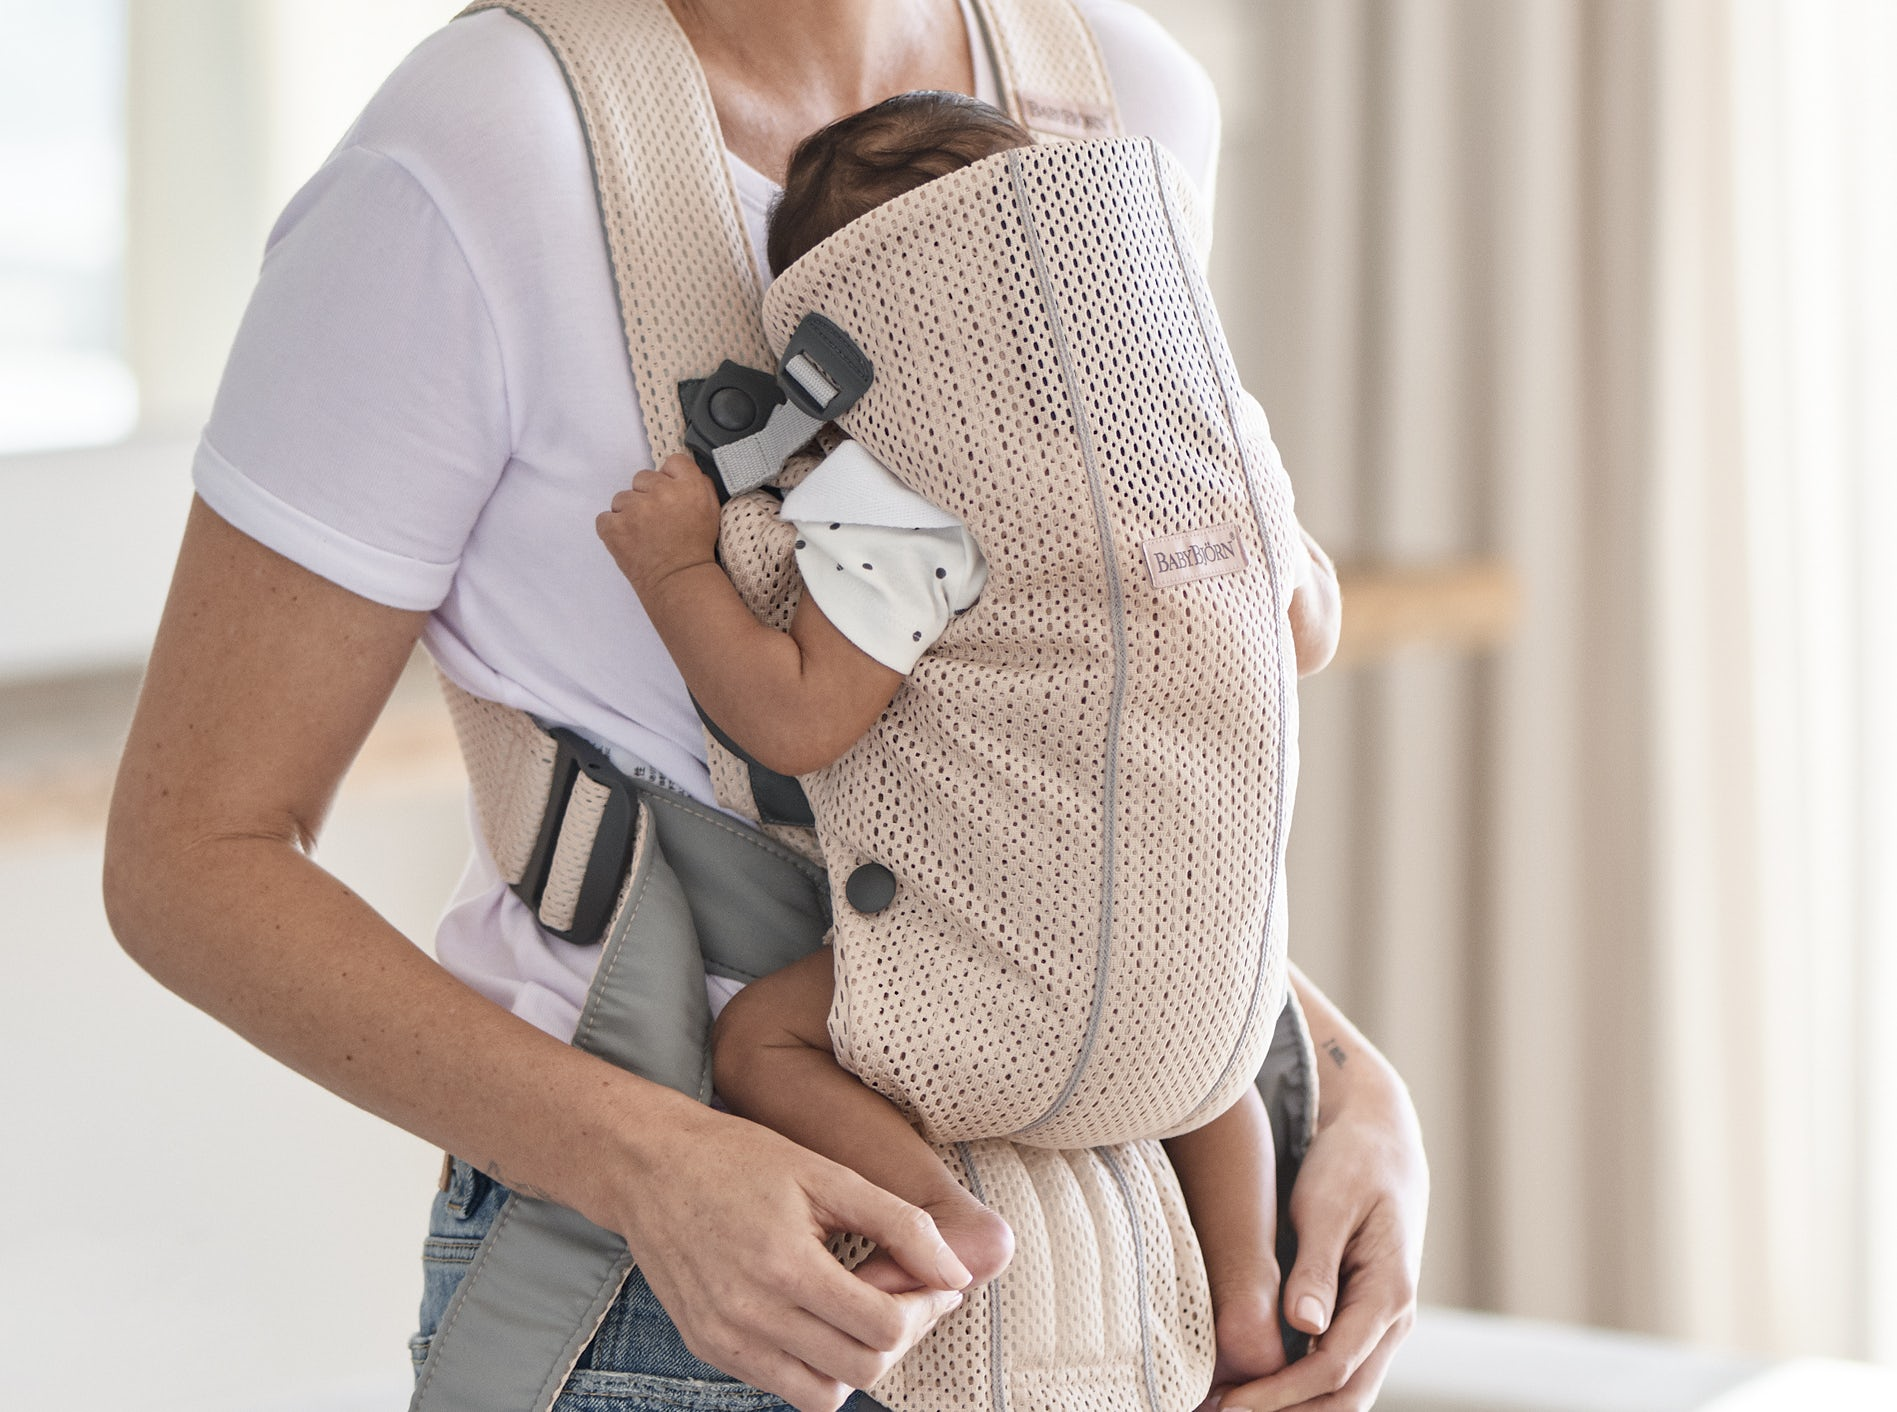 Baby Carrier Mini Pearly Pink 3D Mesh 021001. soft and airy mesh that dries quickly - BABYBJÖRN